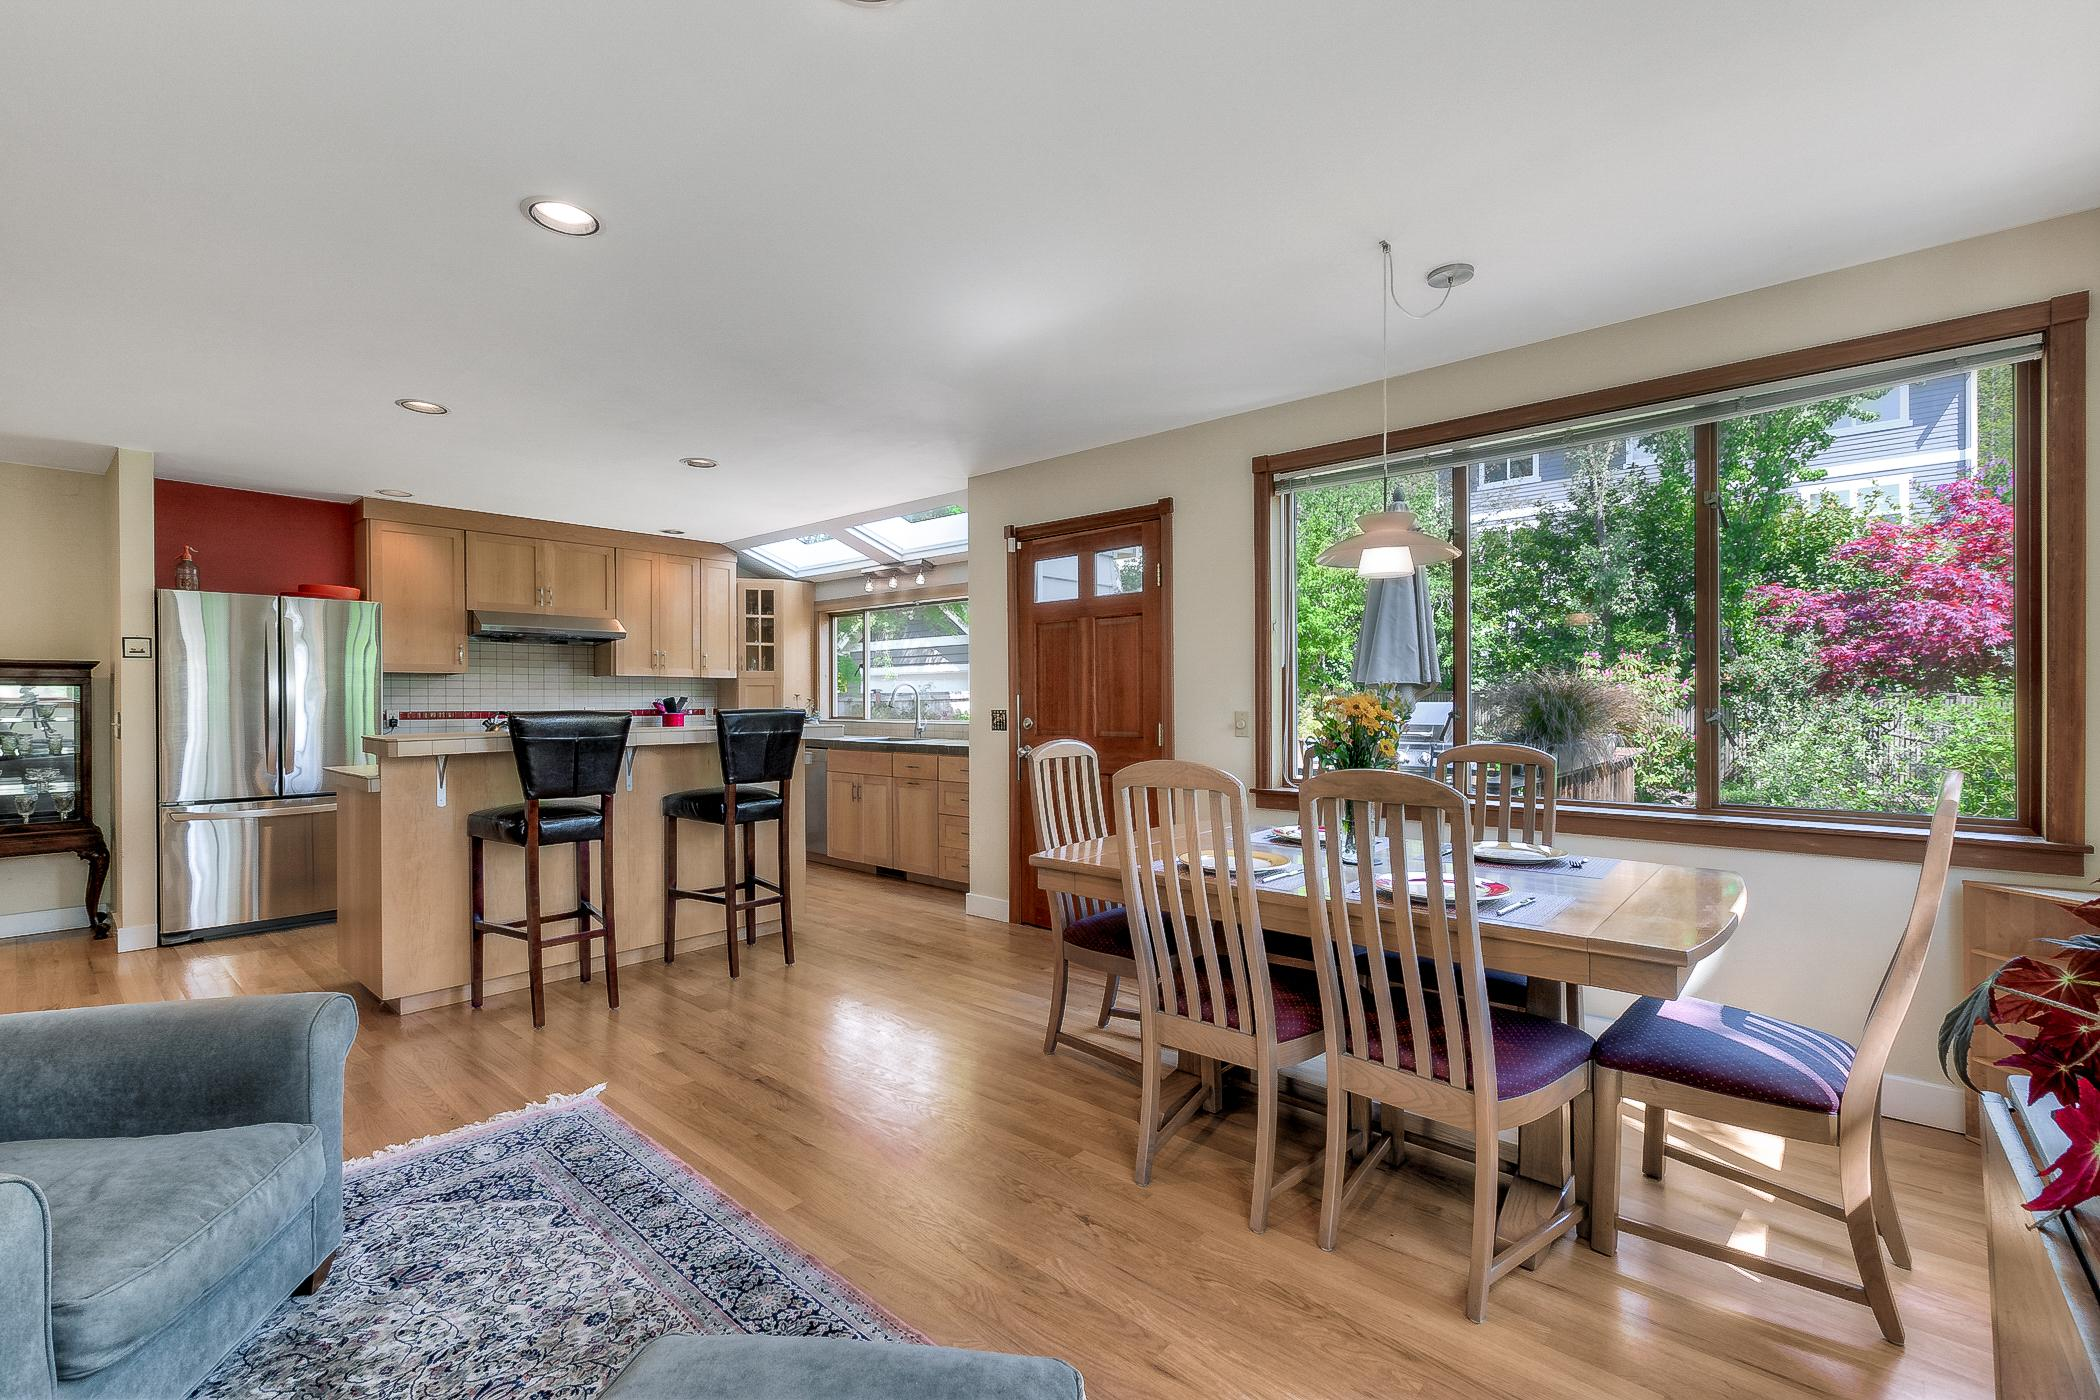 The open dining and kitchen space offers a great flow for entertaining.